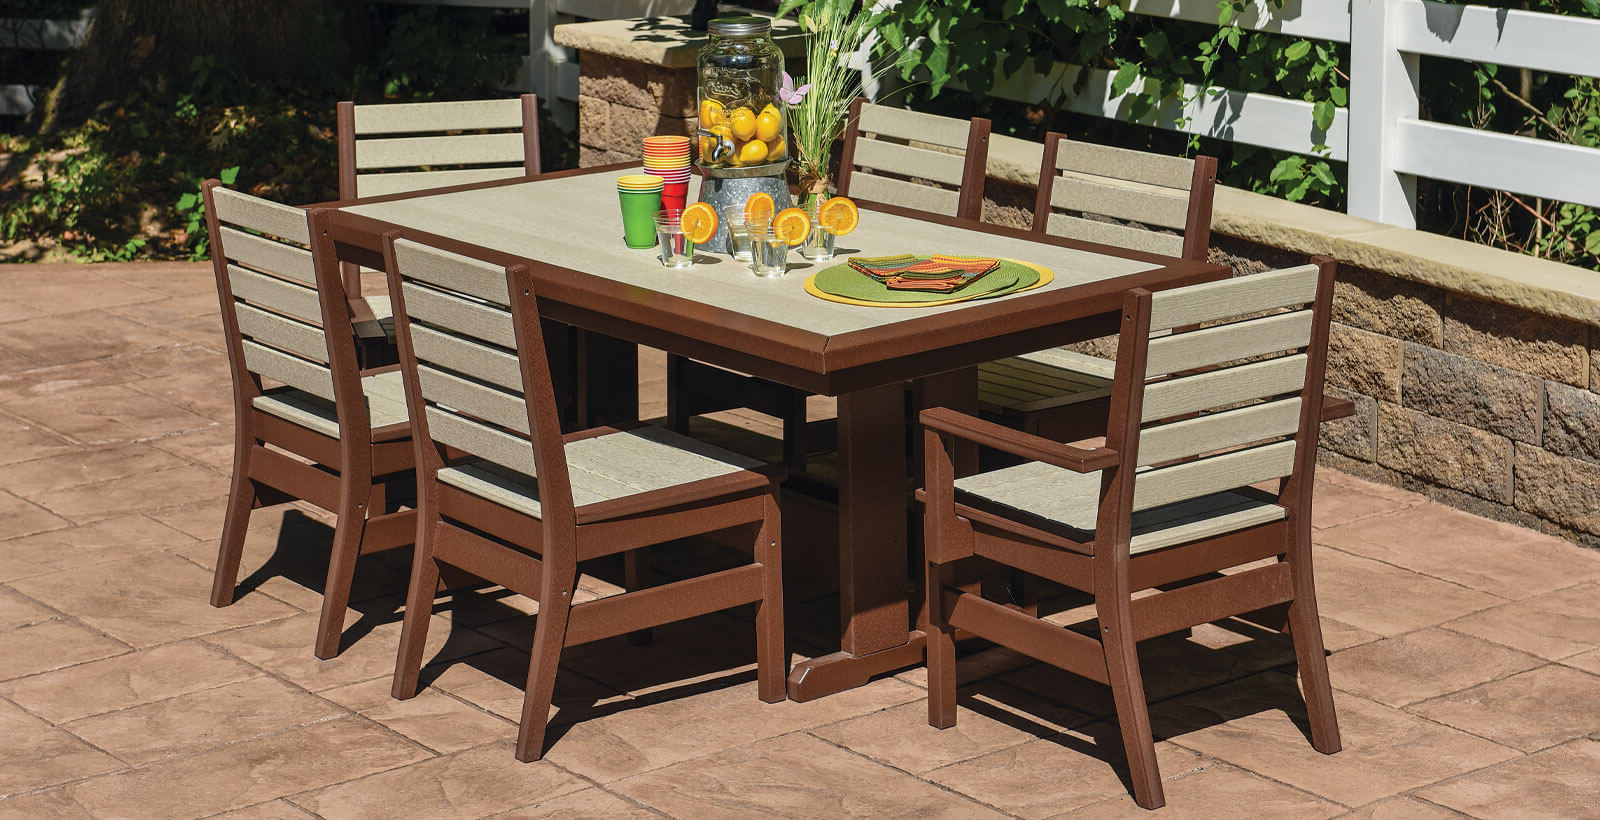 E.c. Woods Throughout Famous Saintcroix 3 Piece Dining Sets (Gallery 16 of 25)